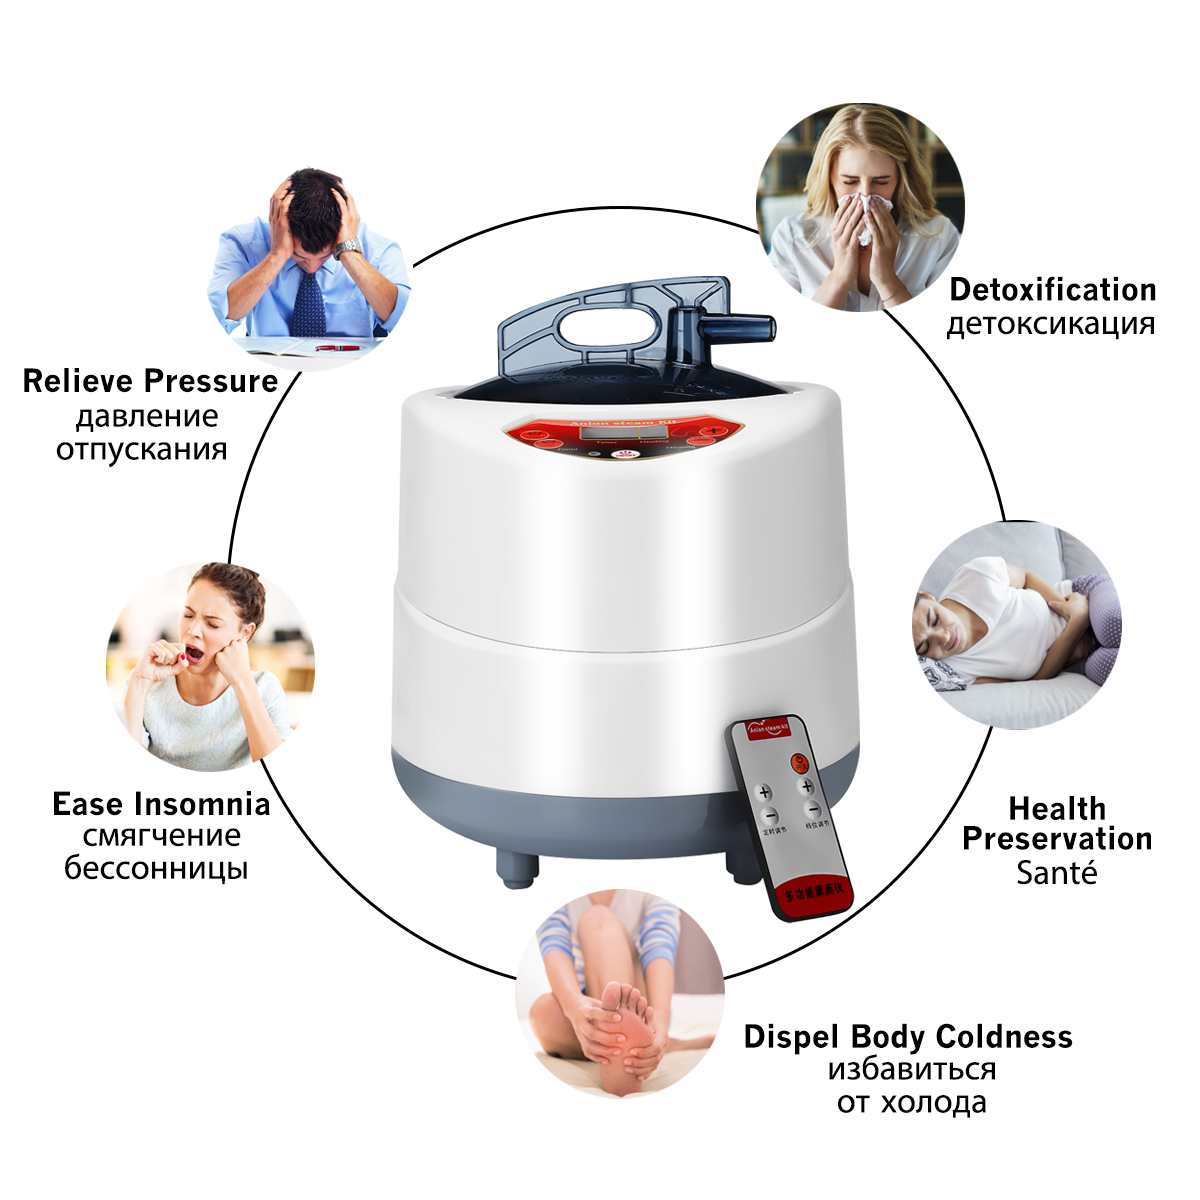 Indoor 2l 220v 60hz 1000w Foldable Portable Steam Sauna Room Tent Loss Weight Slimming Skin Spa For Personal Health Care 4